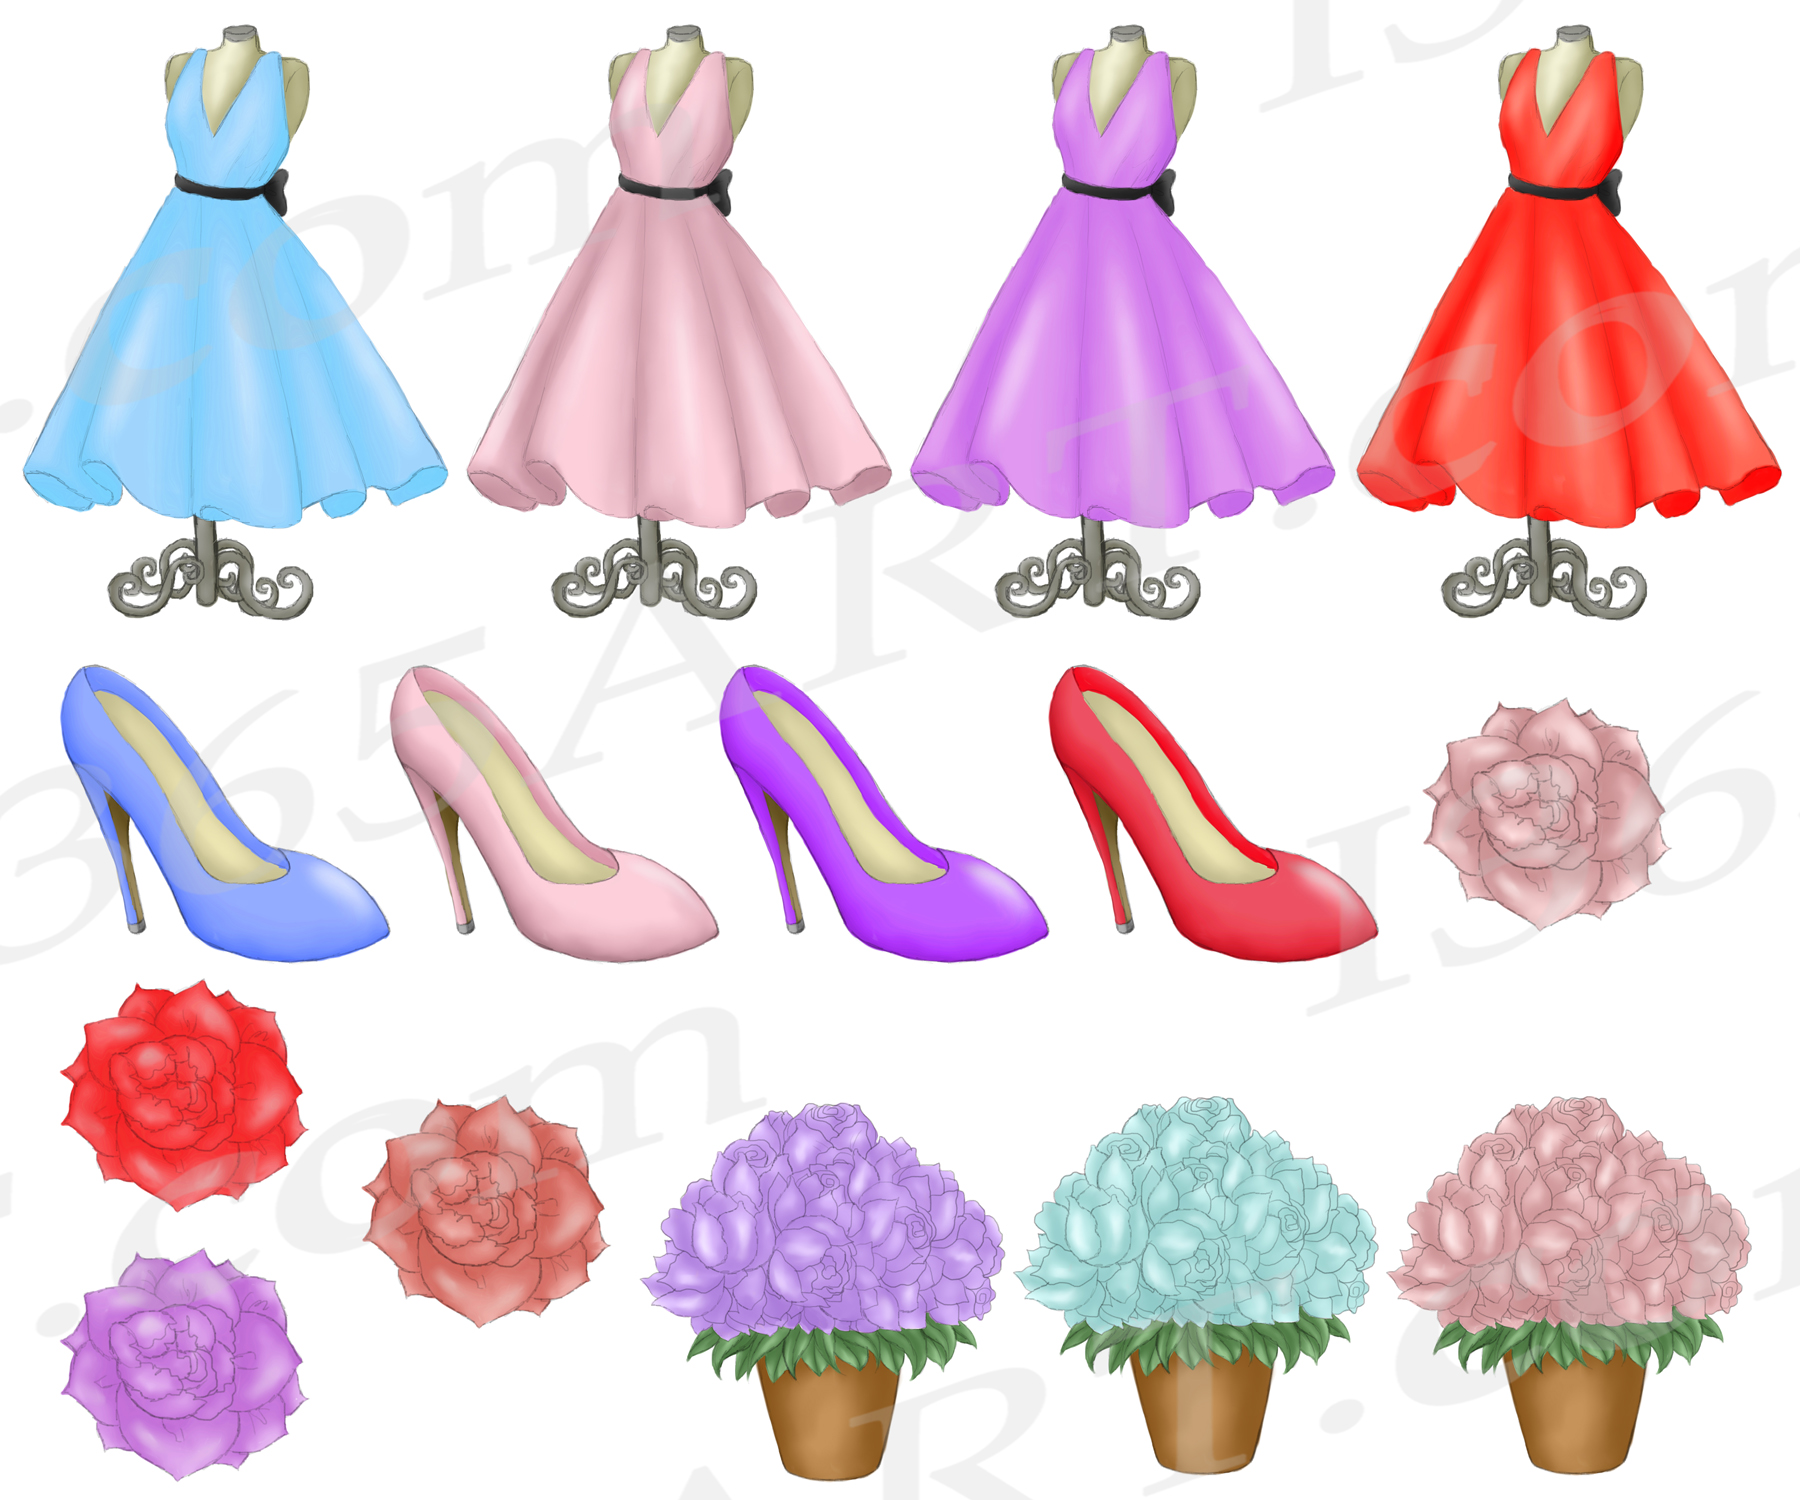 Springtime in Paris Clipart Girls & Fashion Illustrations example image 4